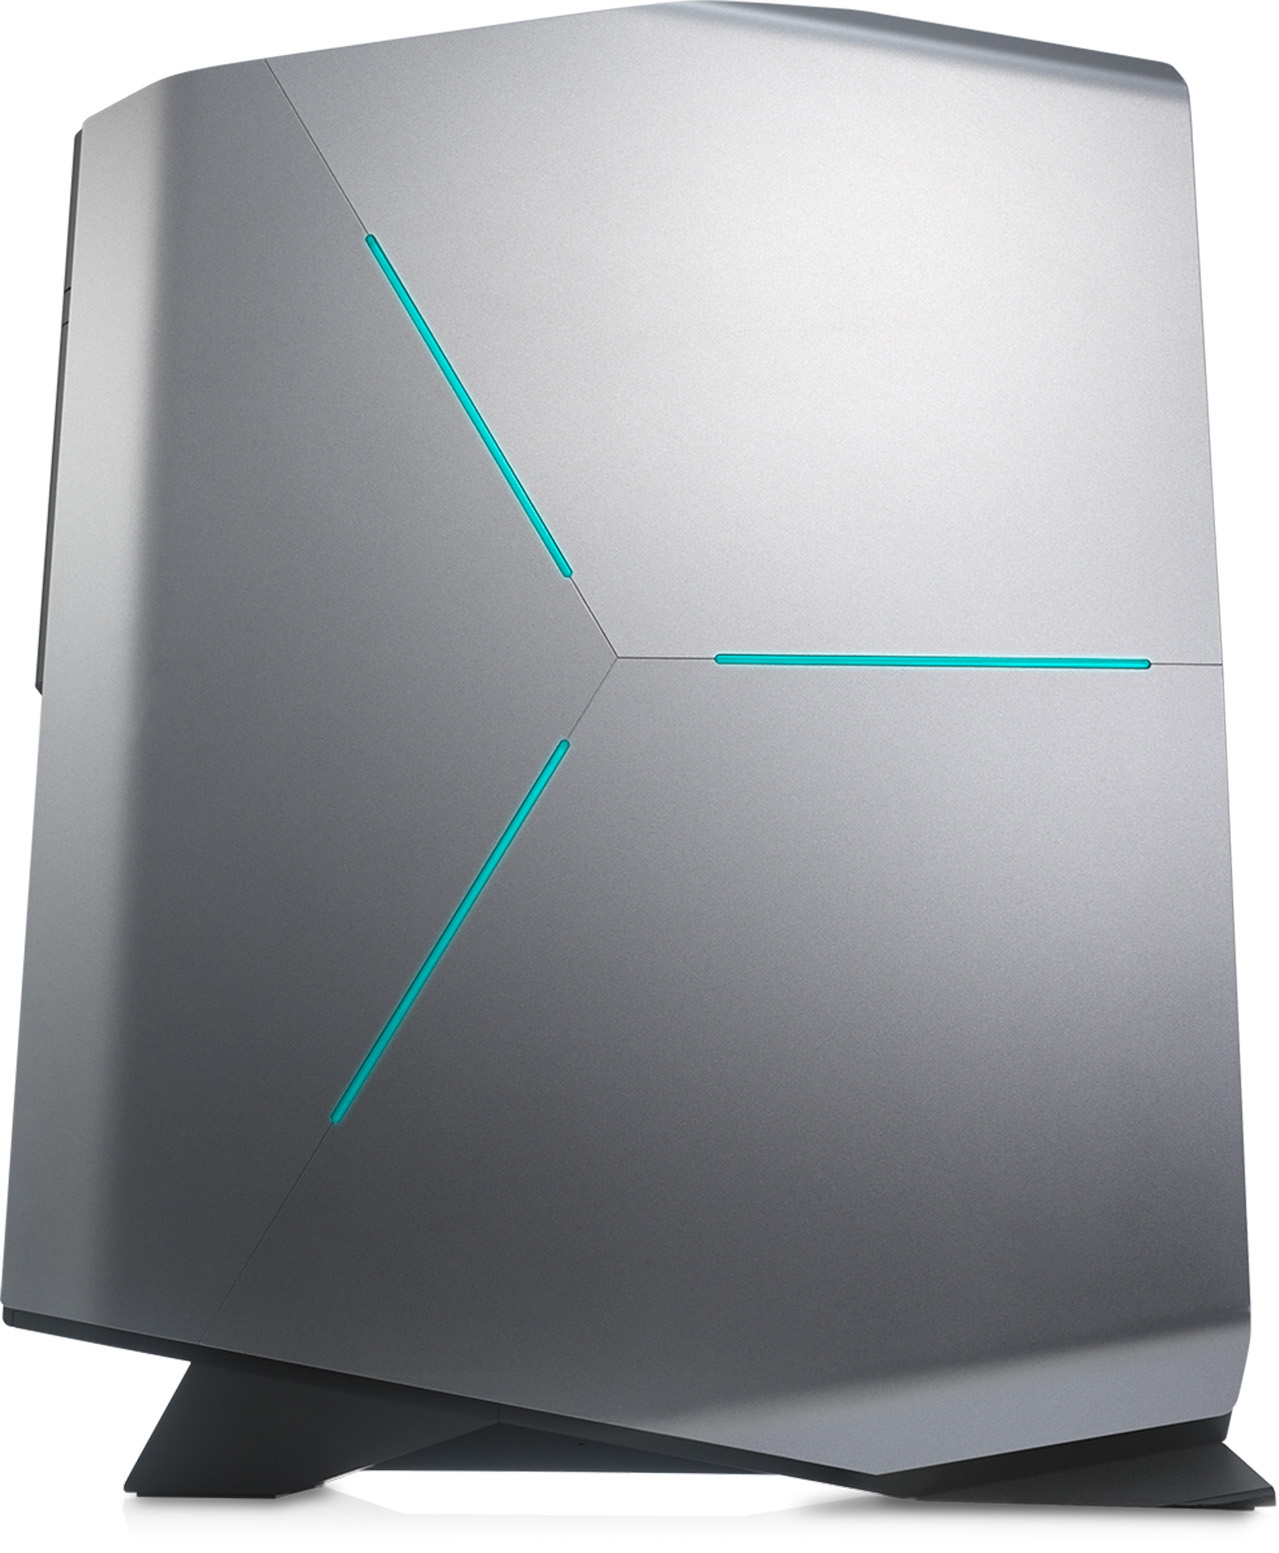 Alienware Aurora R6 AWAUR6-7512SLV-PUS Gaming Desktop Deal